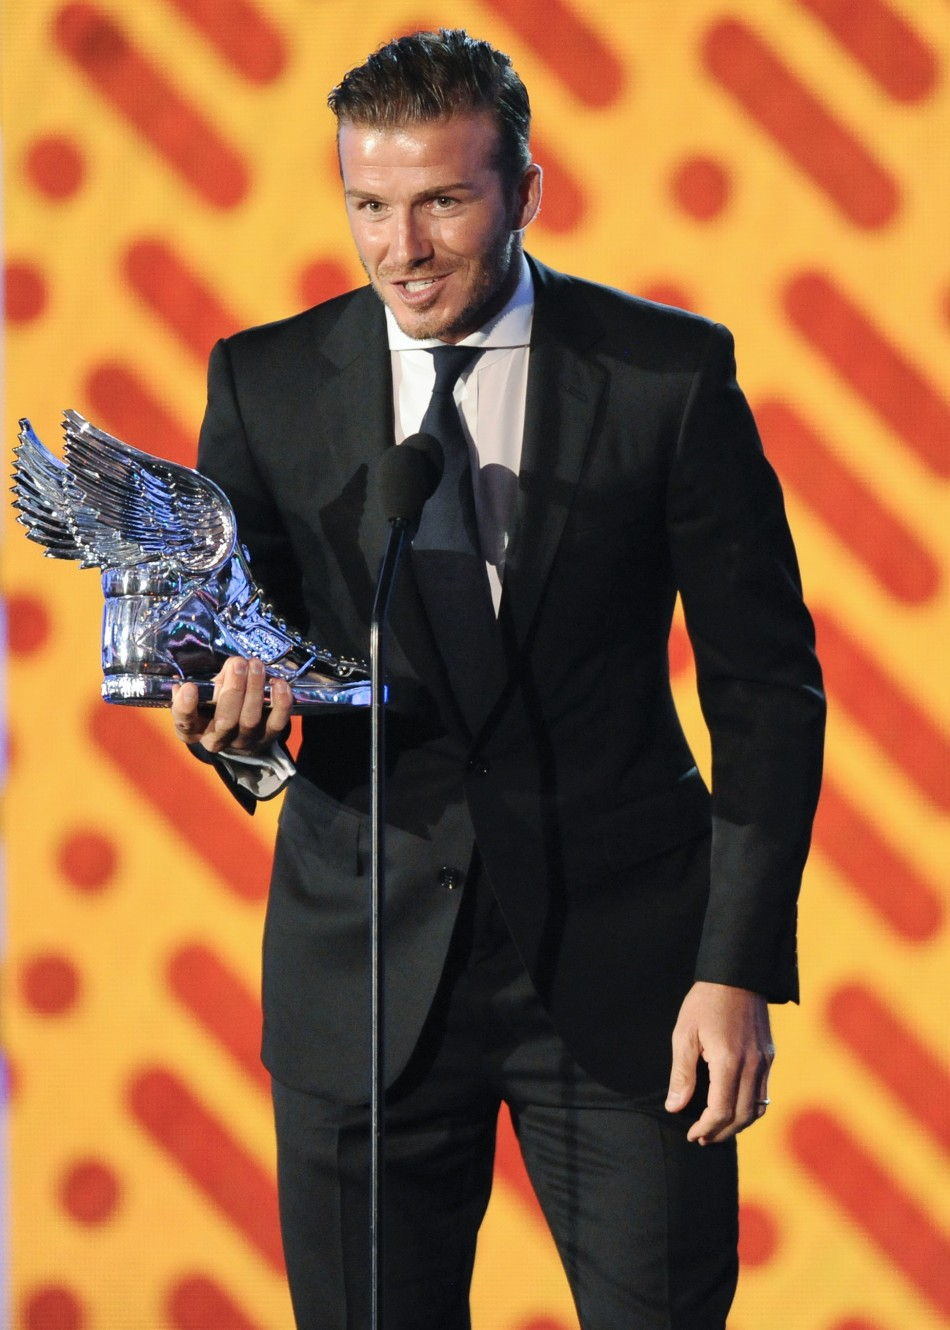 David Beckham accepts the Do Something Athlete award during the Do Something Awards in Los Angeles, California August 14, 2011.